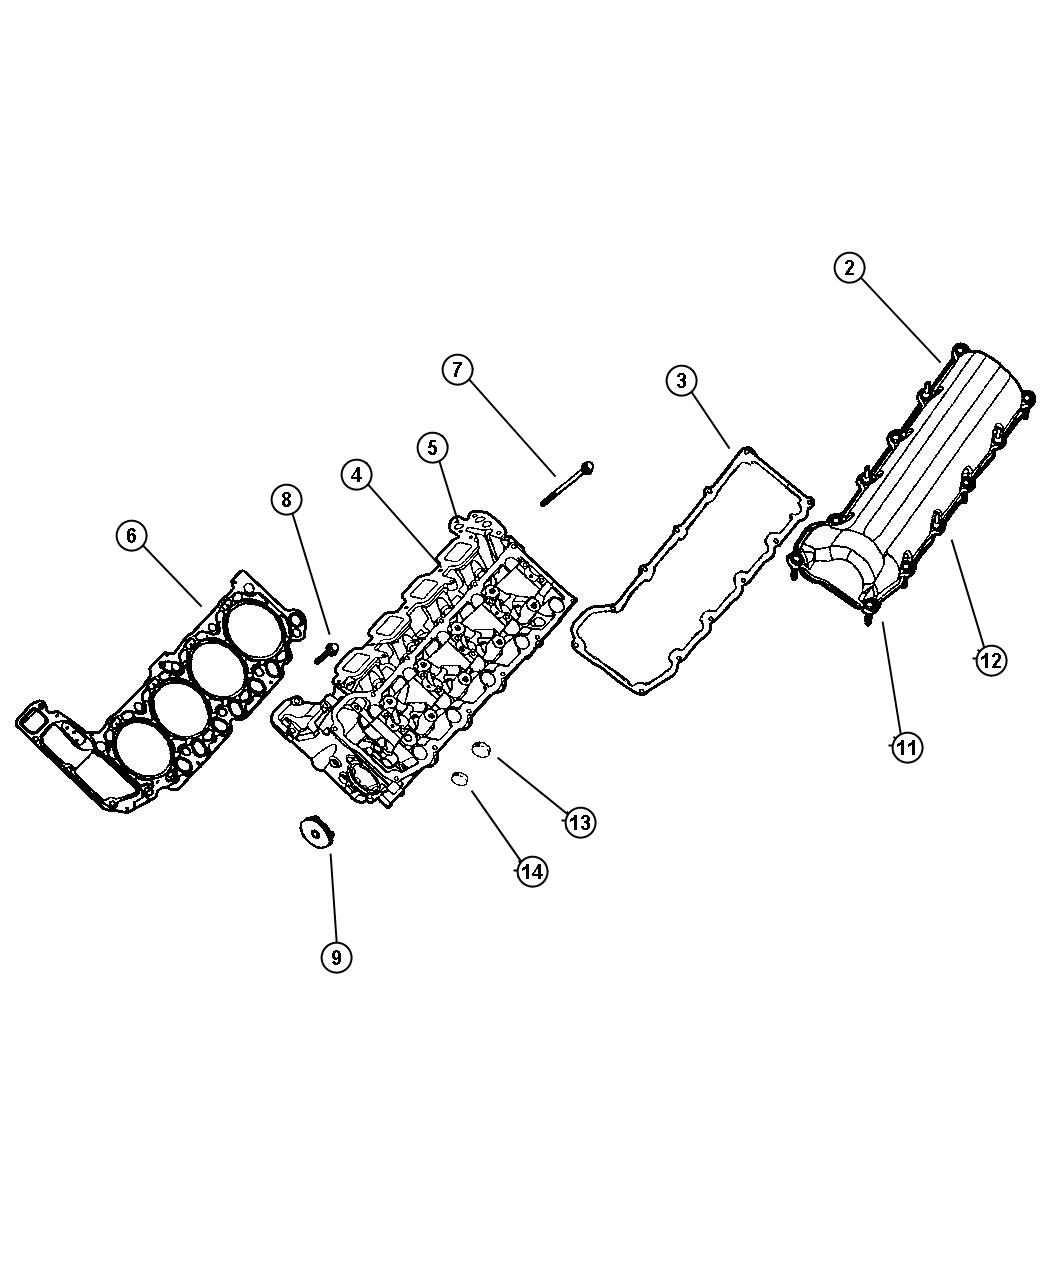 Cylinder Head, 4.7 [[Engine- 4.7L V8 MPI, Engine - 4.7L HO V8 MPI]]. Diagram